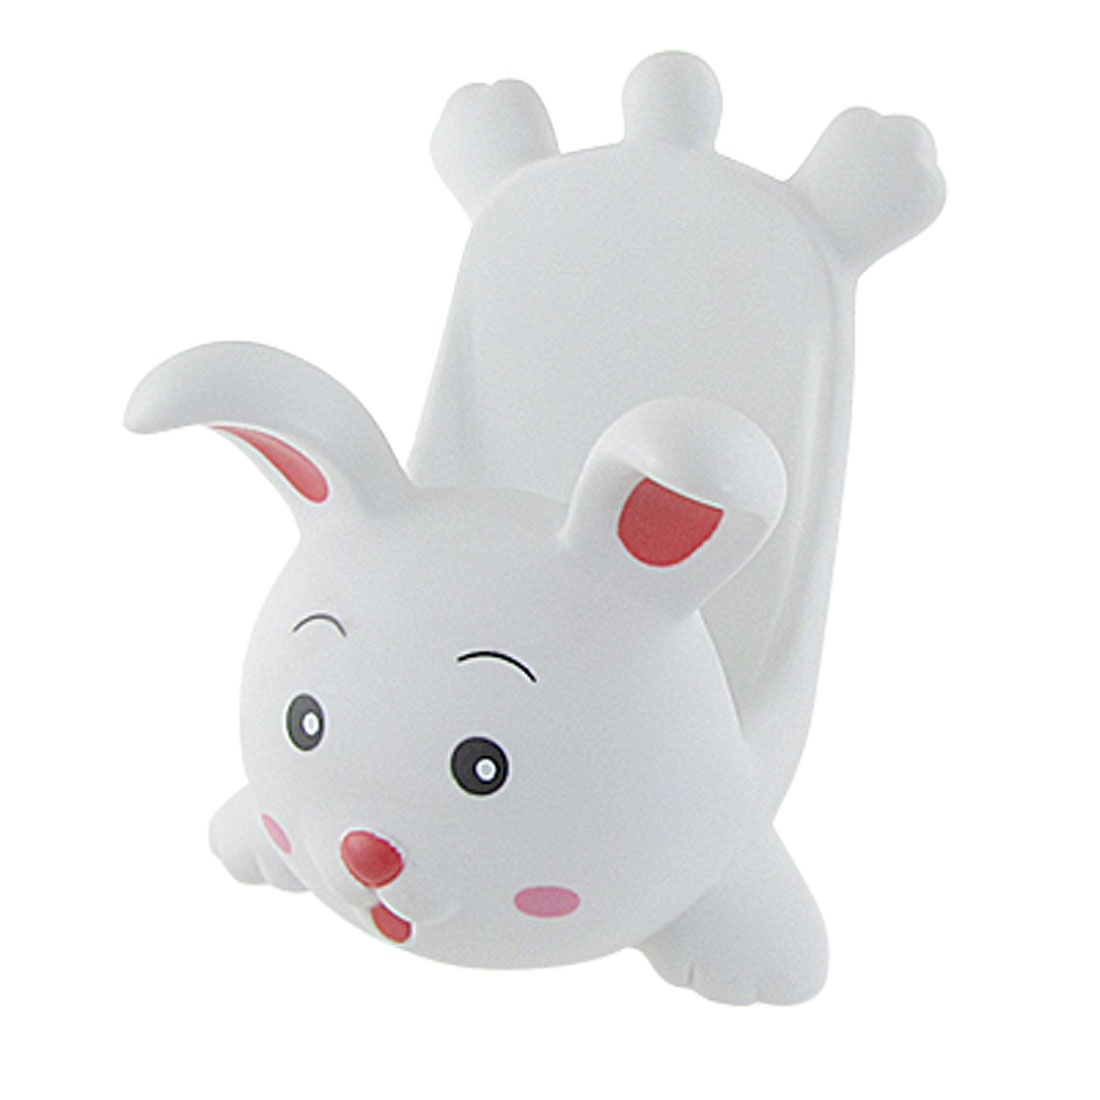 Countertop Mobile Phone White Plastic Rabbit Display Stand Holder